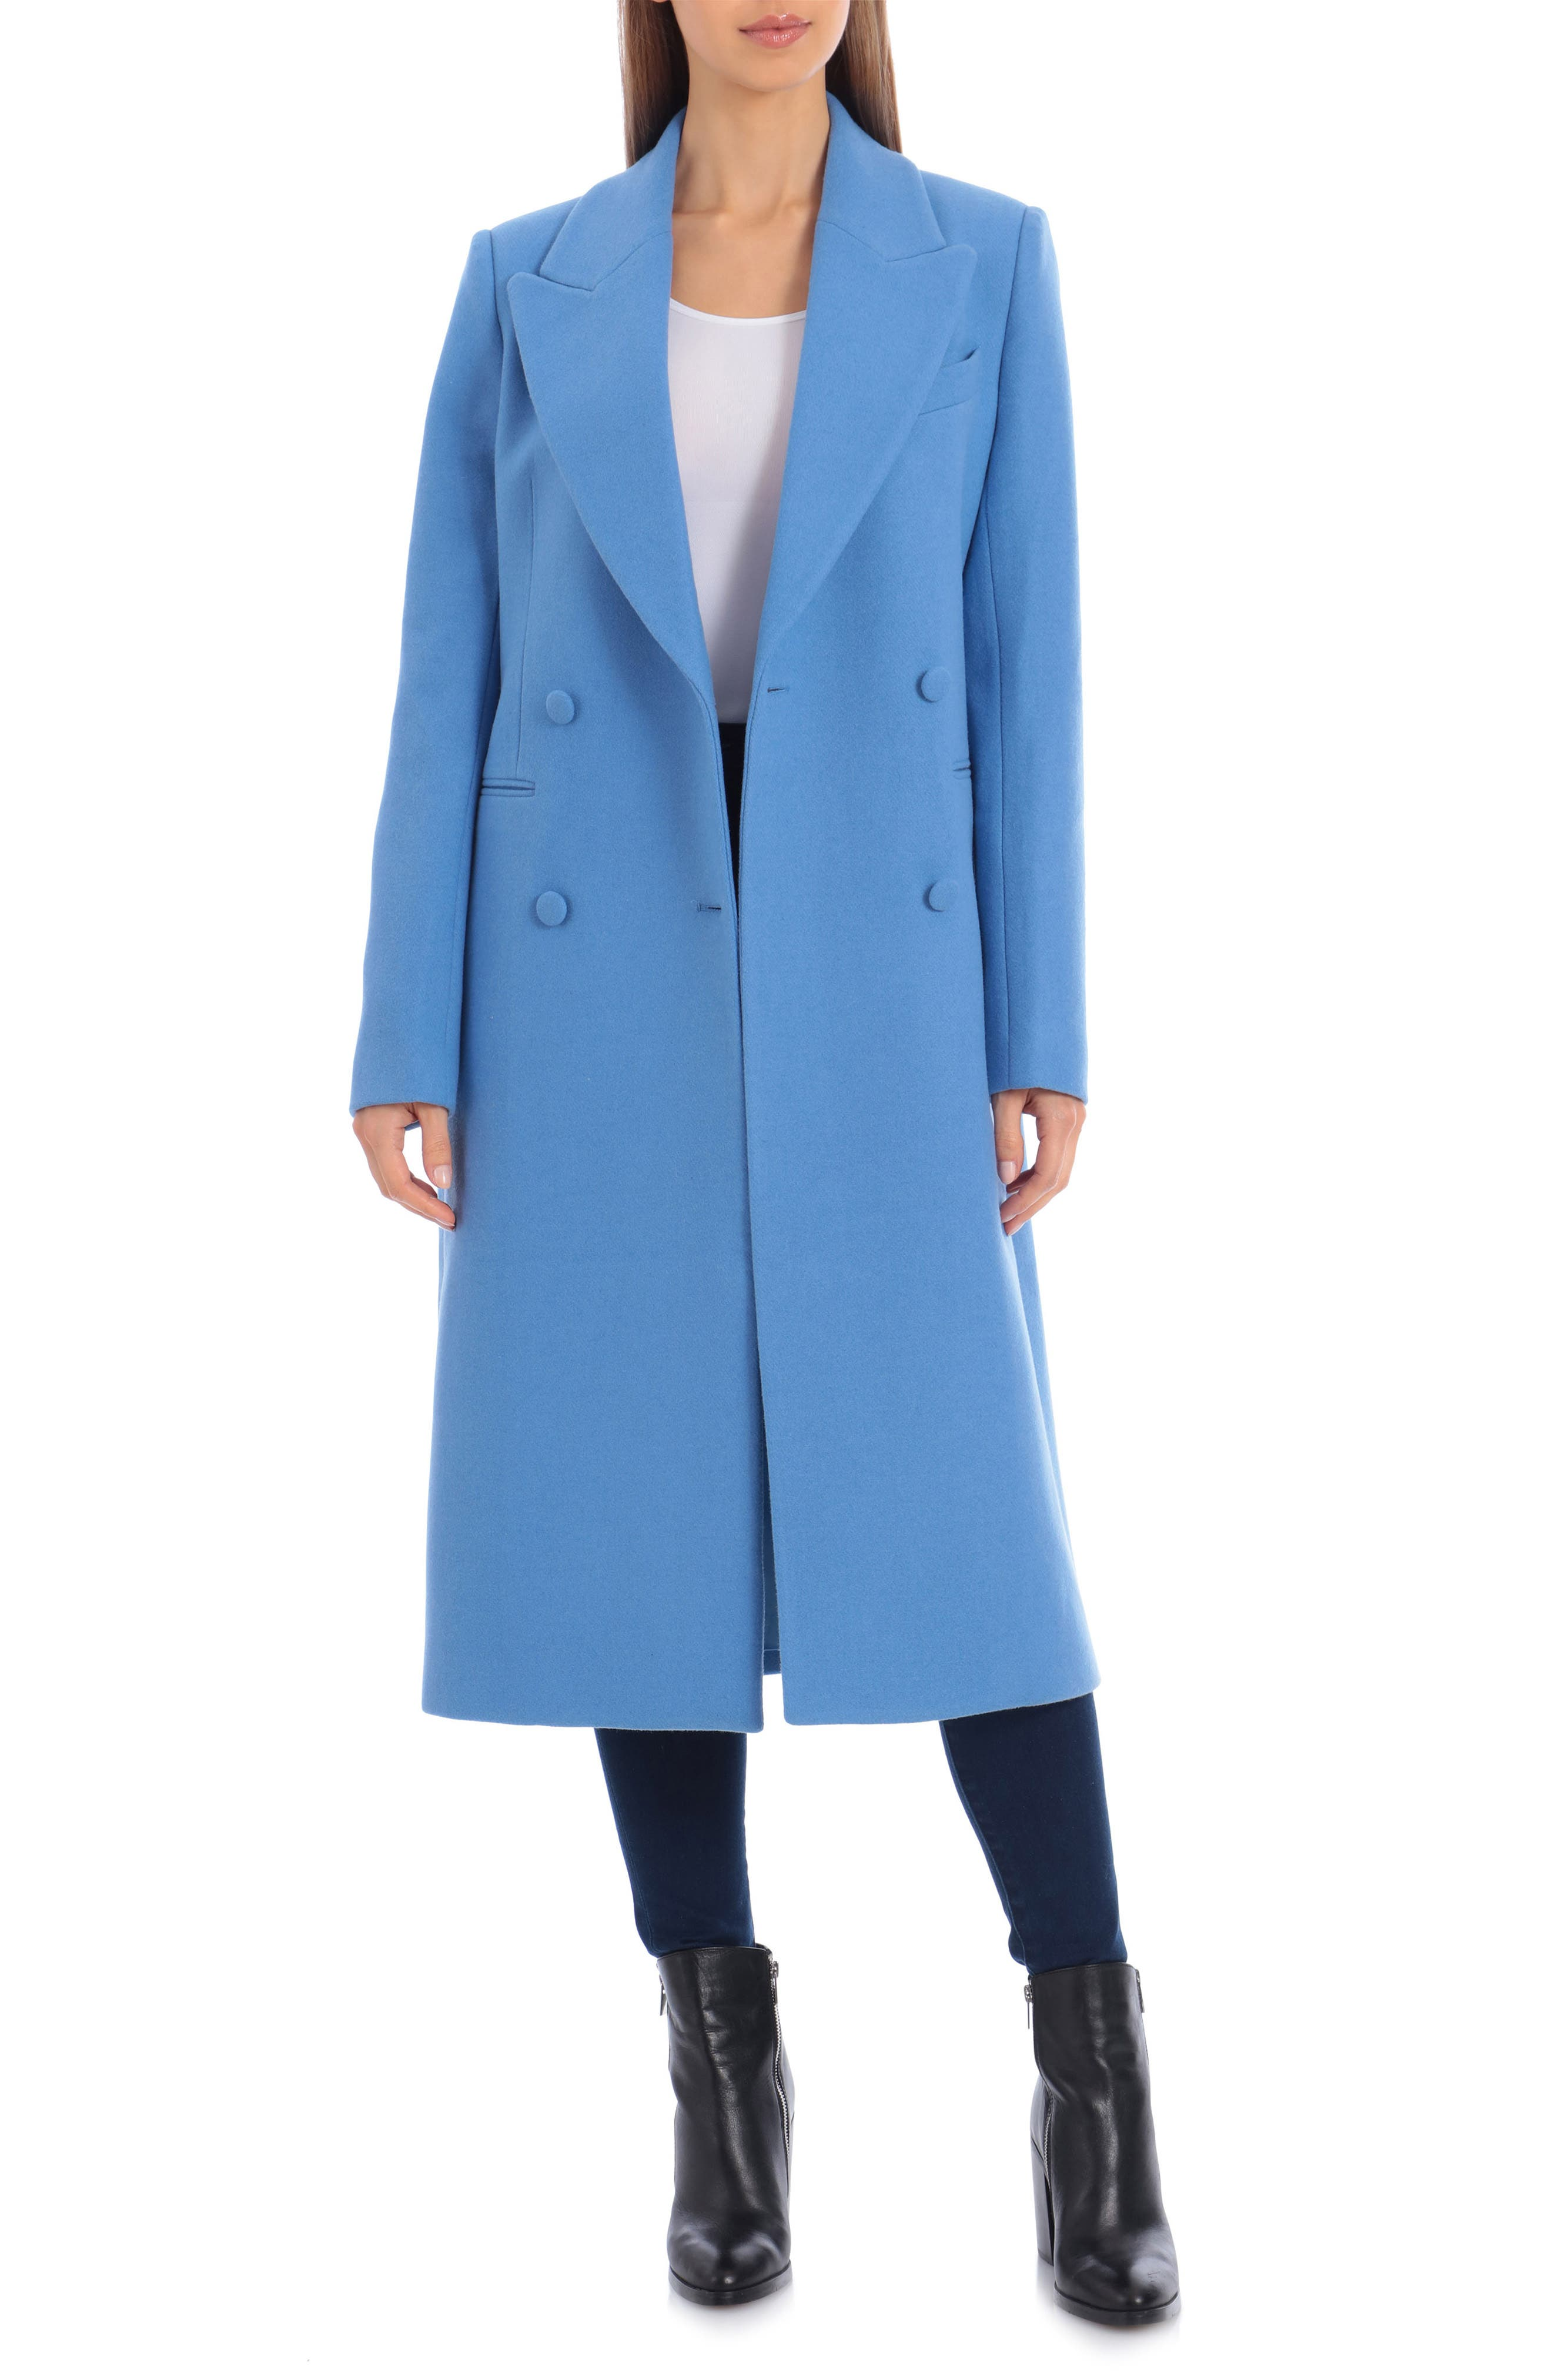 1950s Jackets, Coats, Bolero | Swing, Pin Up, Rockabilly Womens Avec Les Filles Double Breasted Wool Blend Coat Size X-Small - Blue $149.92 AT vintagedancer.com